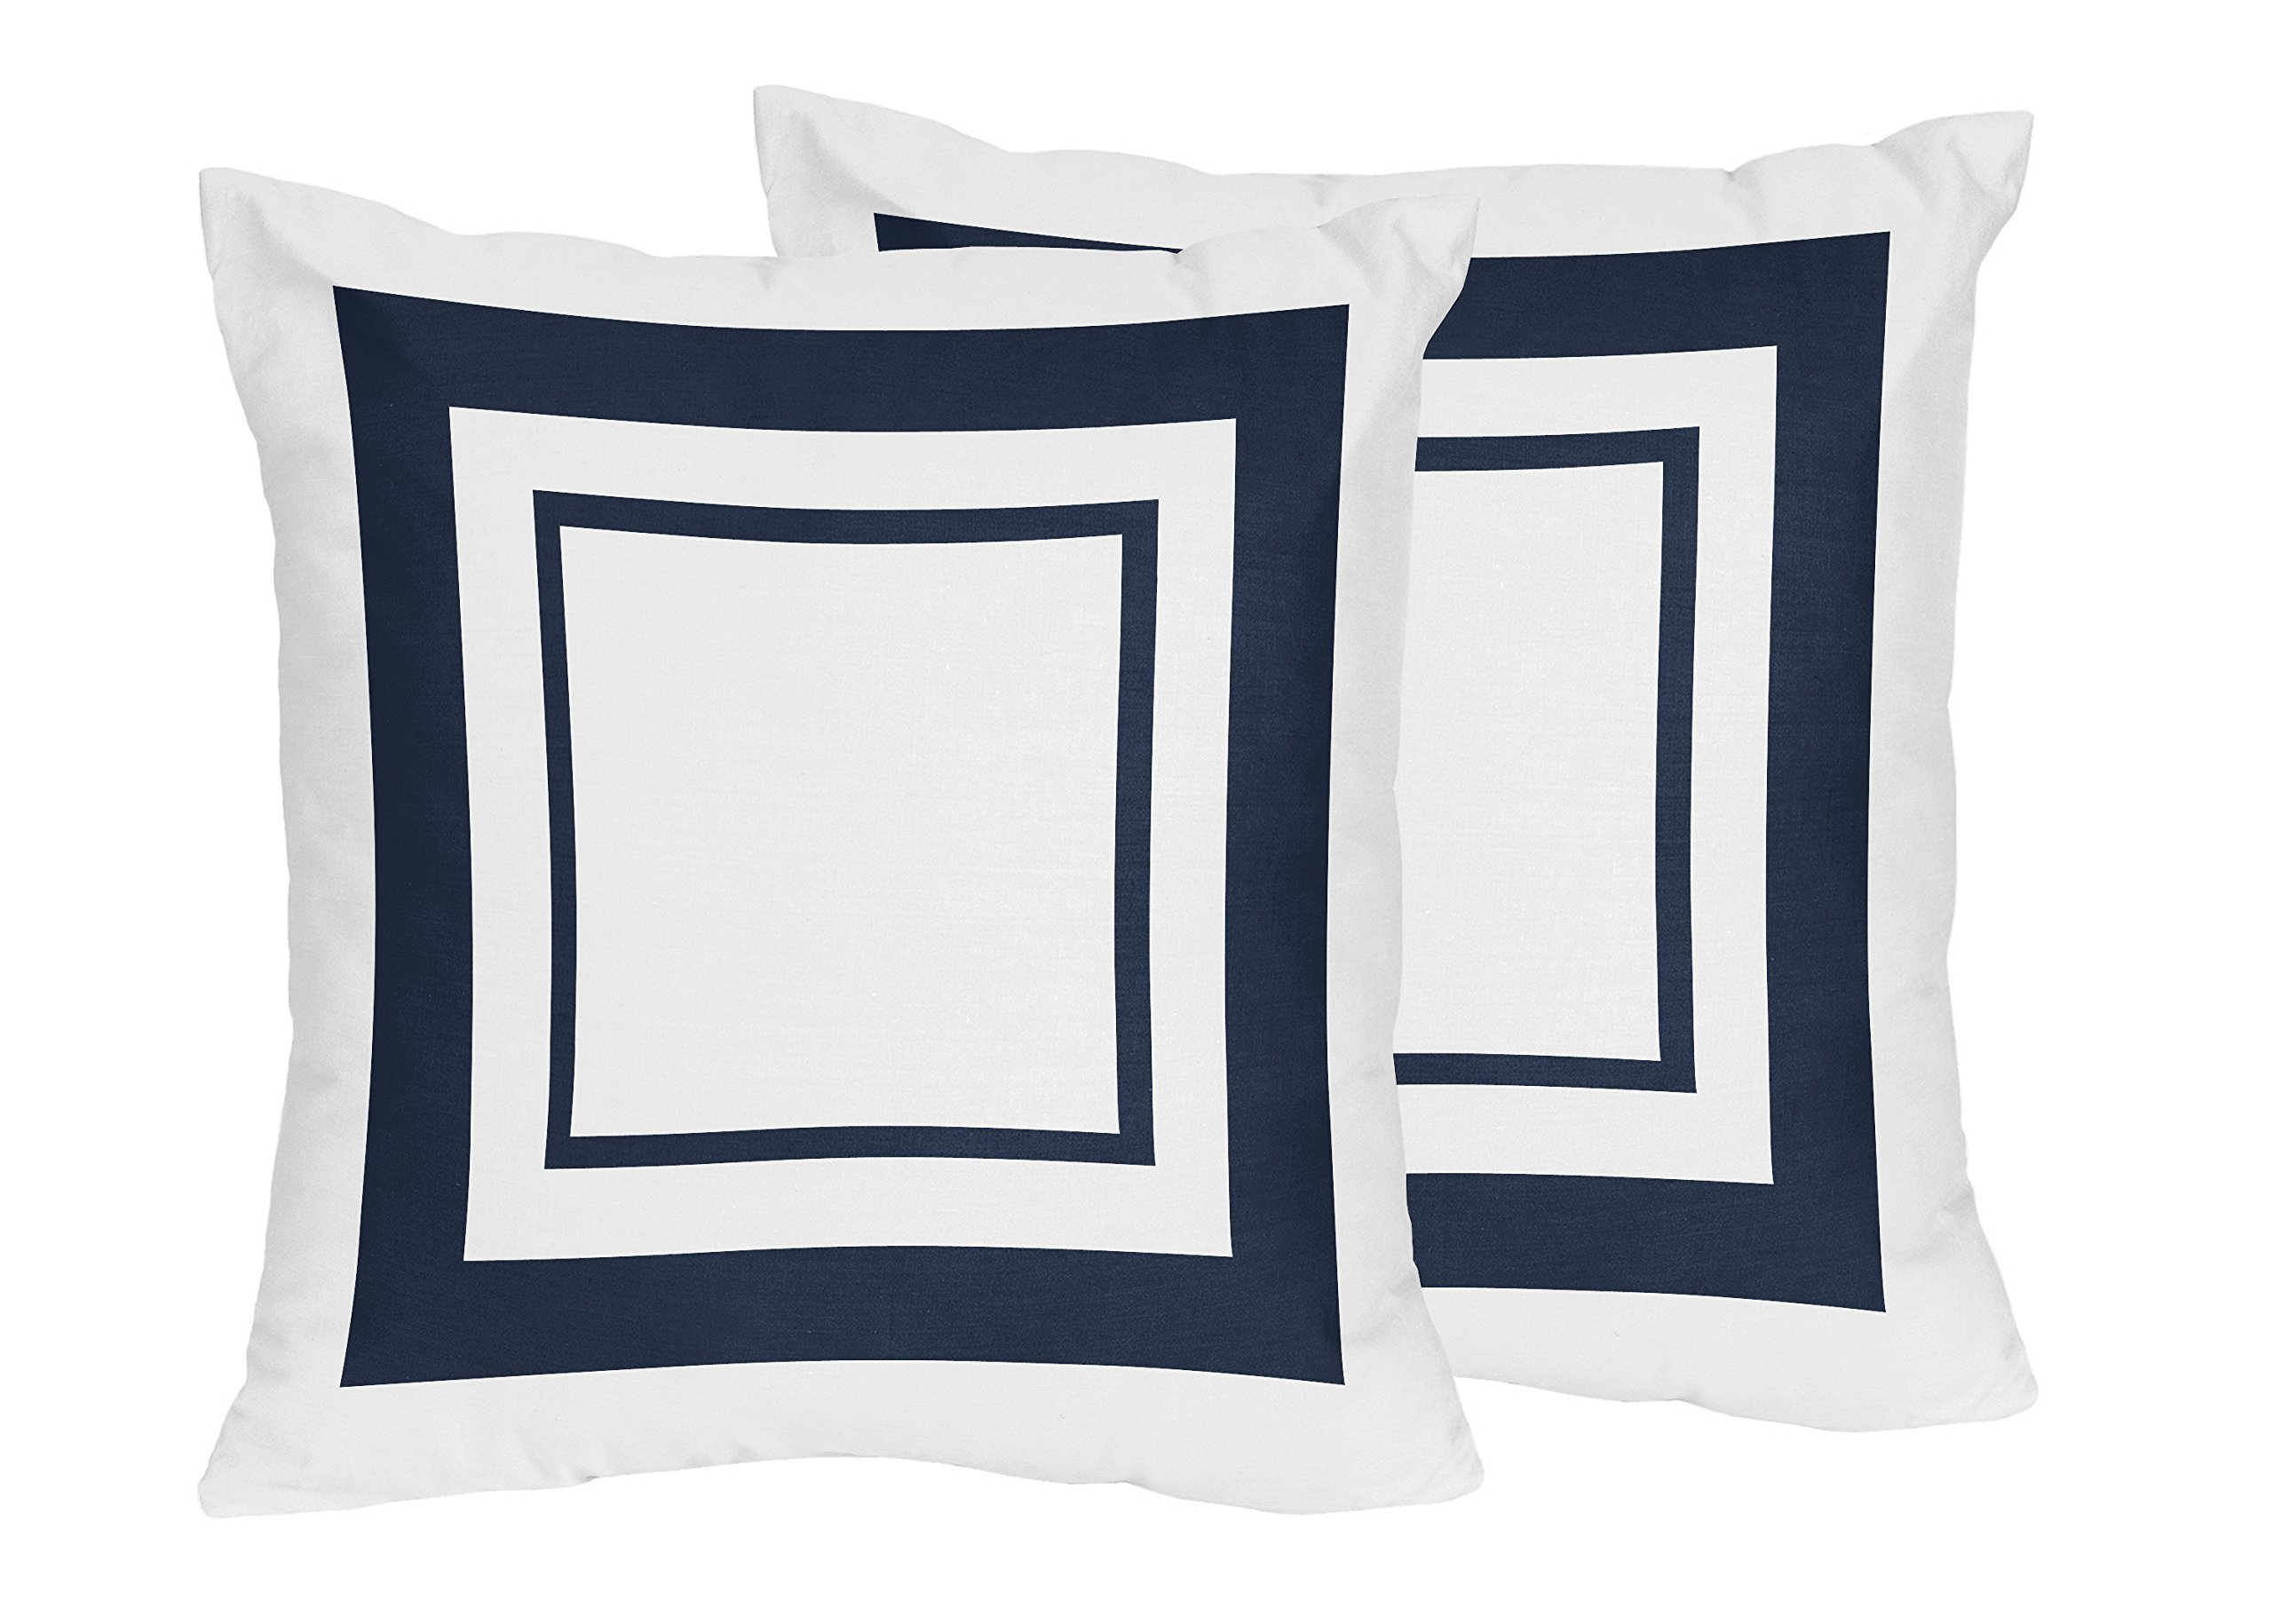 Sweet Jojo Designs 2-Piece Contemporary White and Navy Blue Modern Hotel Decorative Accent Throw Pillows